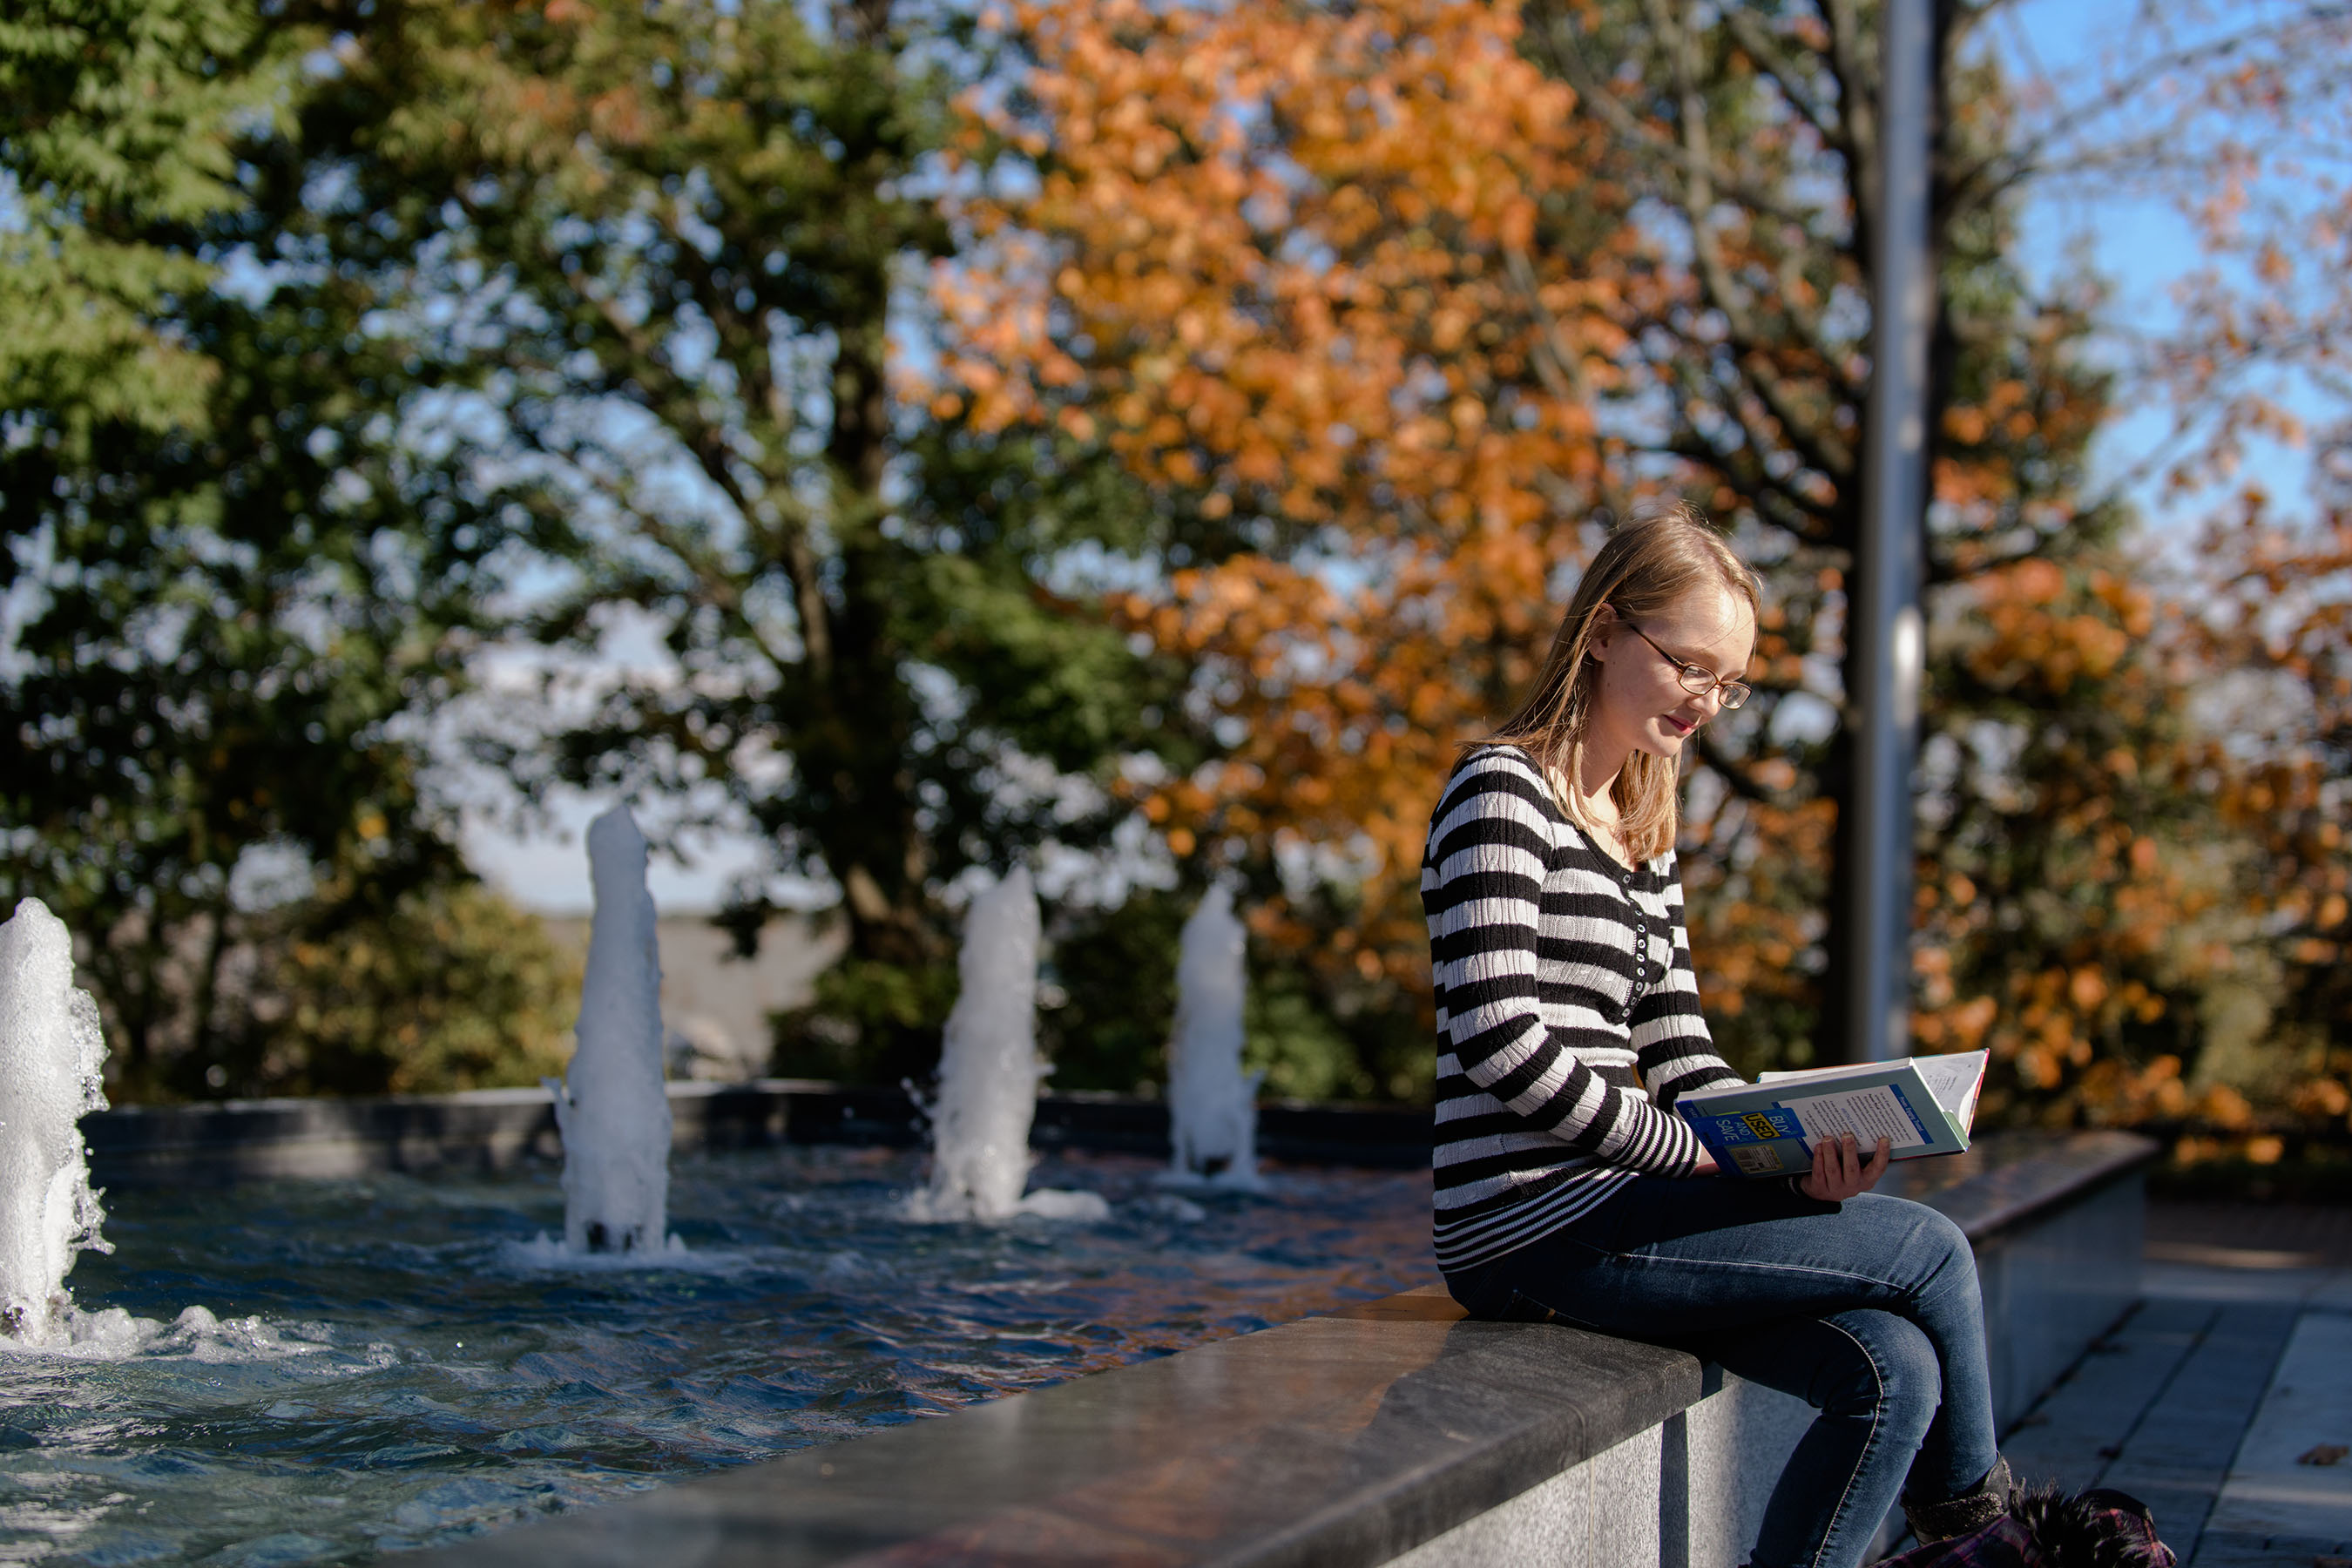 Student reading book sitting on fountain edge on campus.